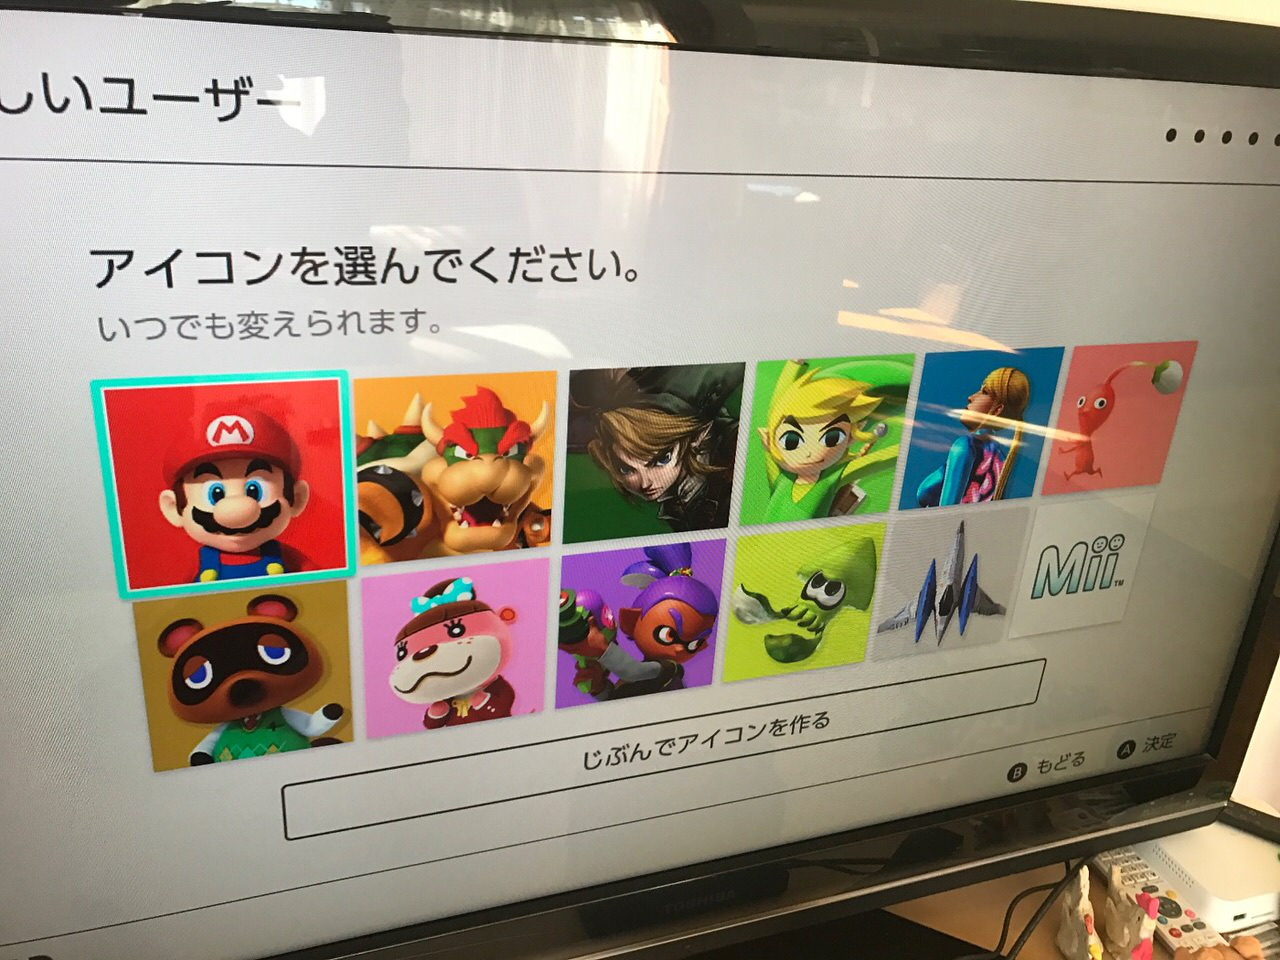 Nintendo switch setup 6777